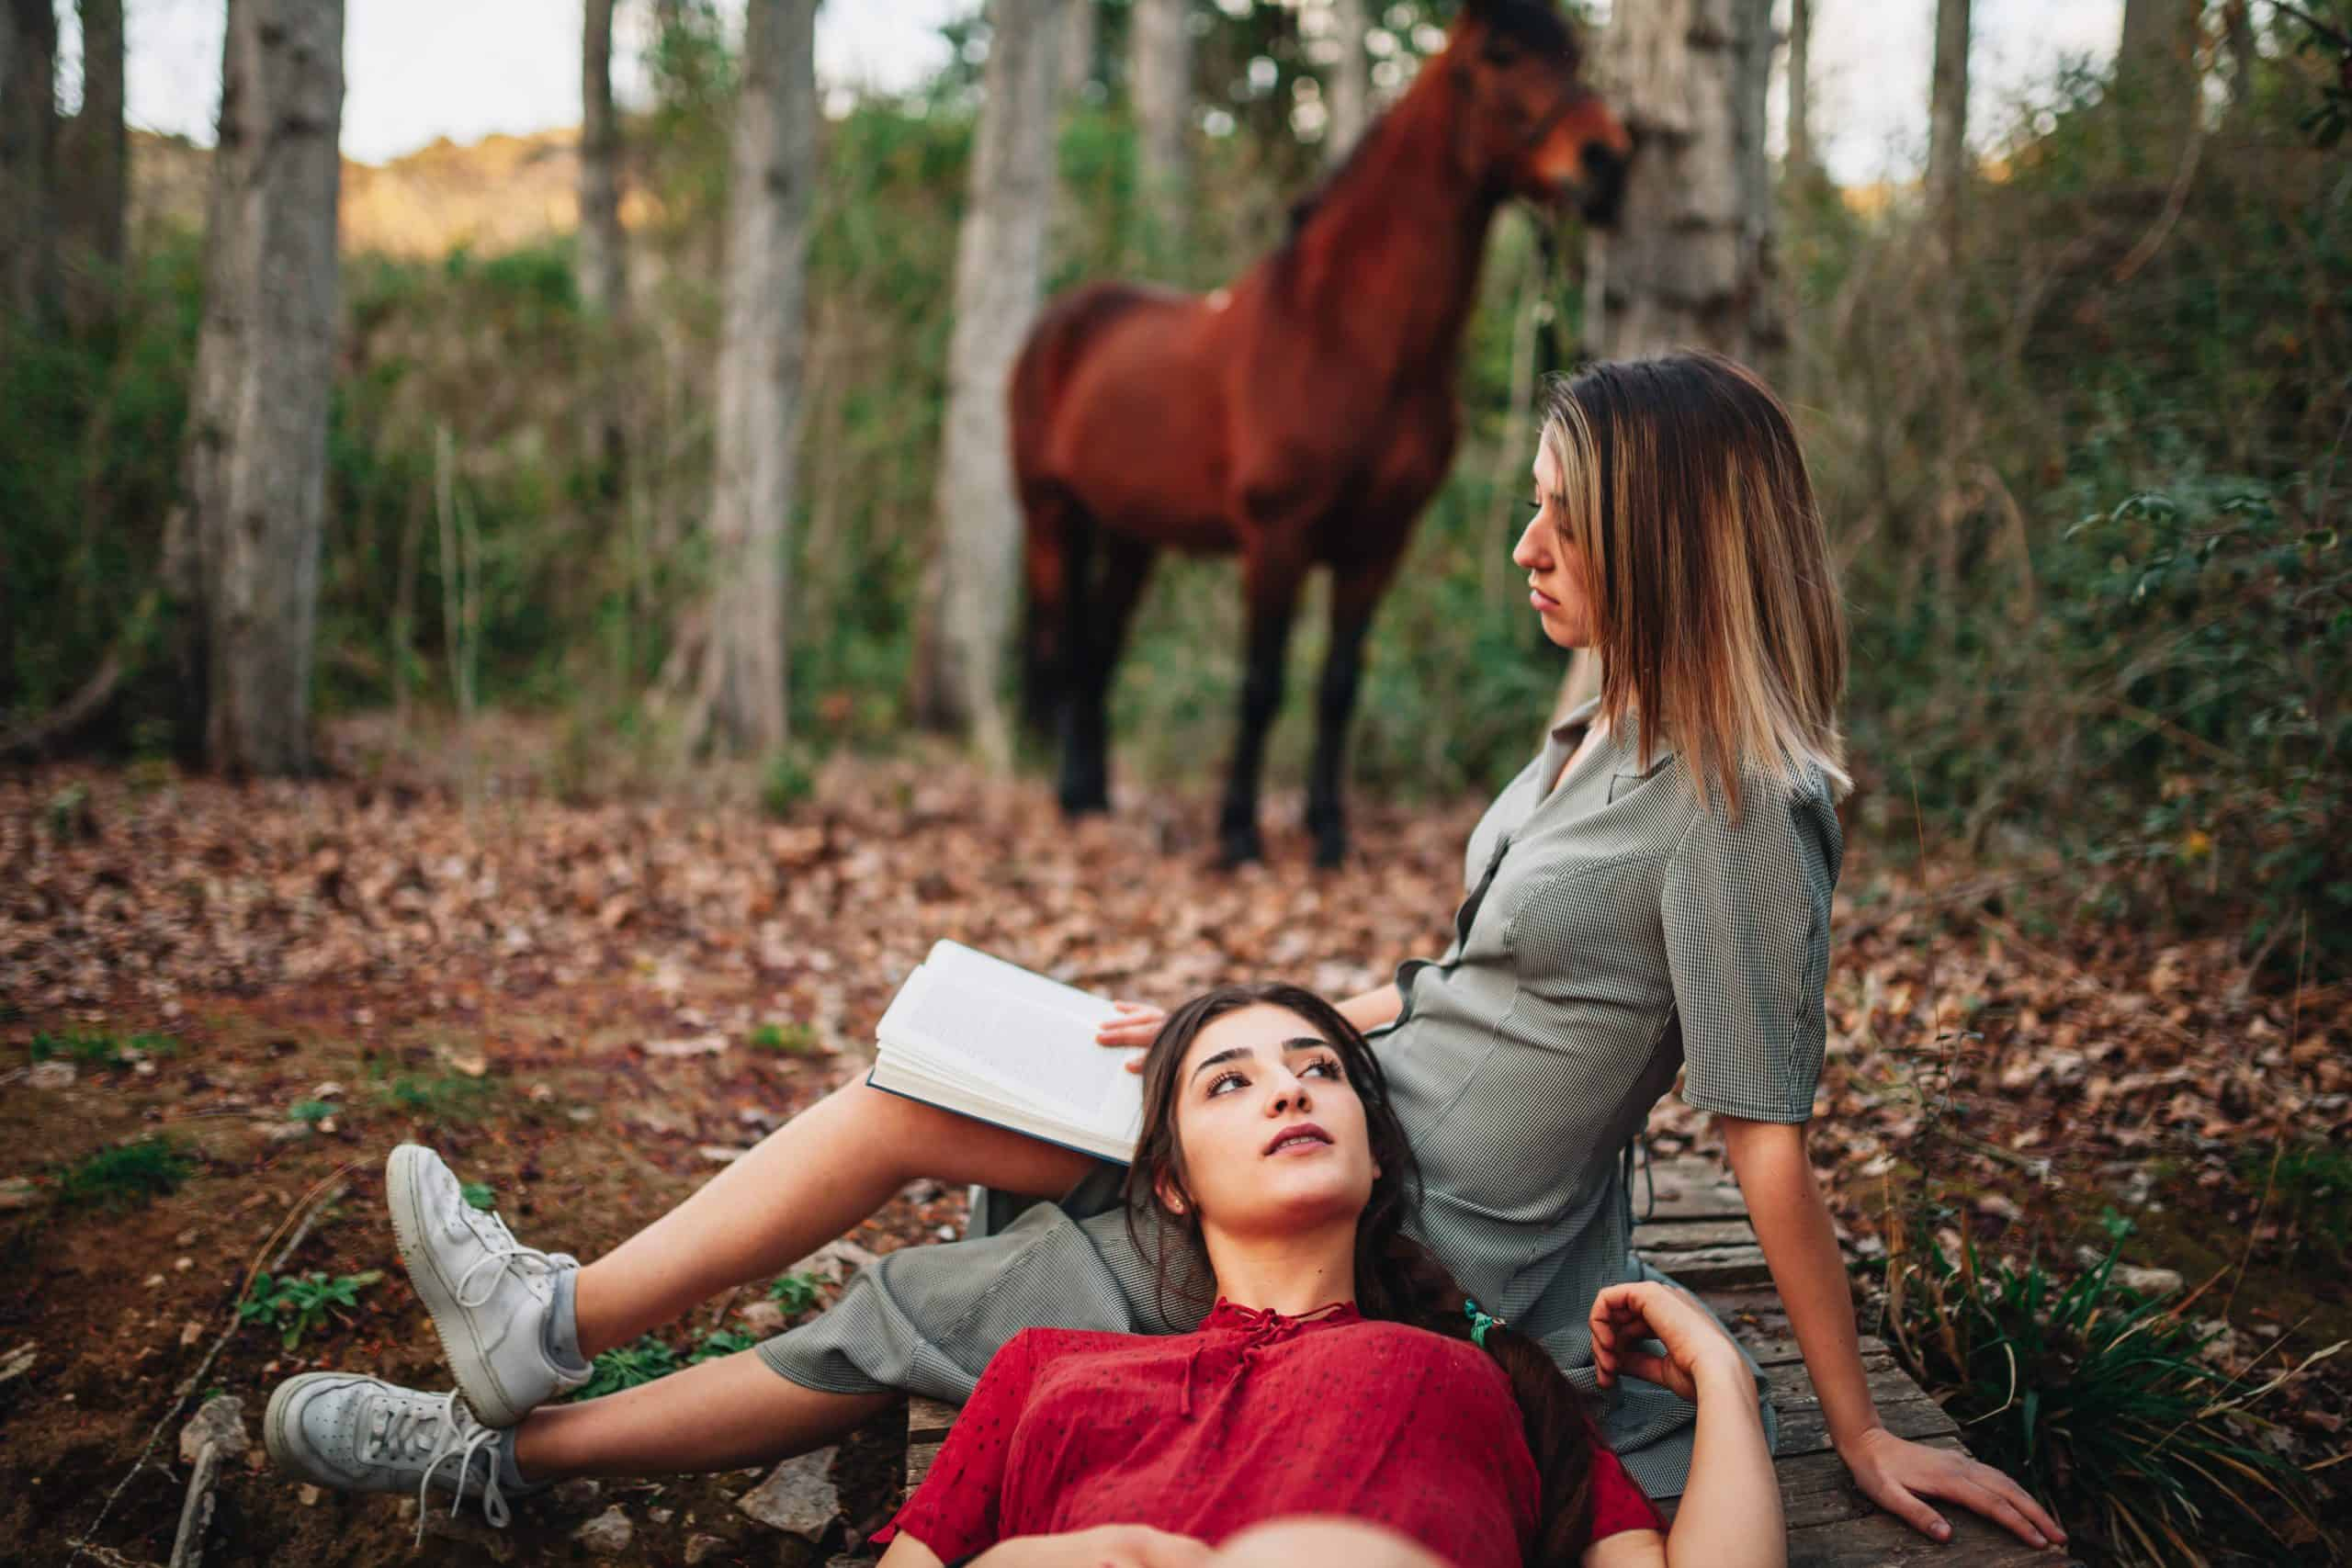 Young couple of women wearing dresses reading a book and taking photos with old camera in the forest with their horse.